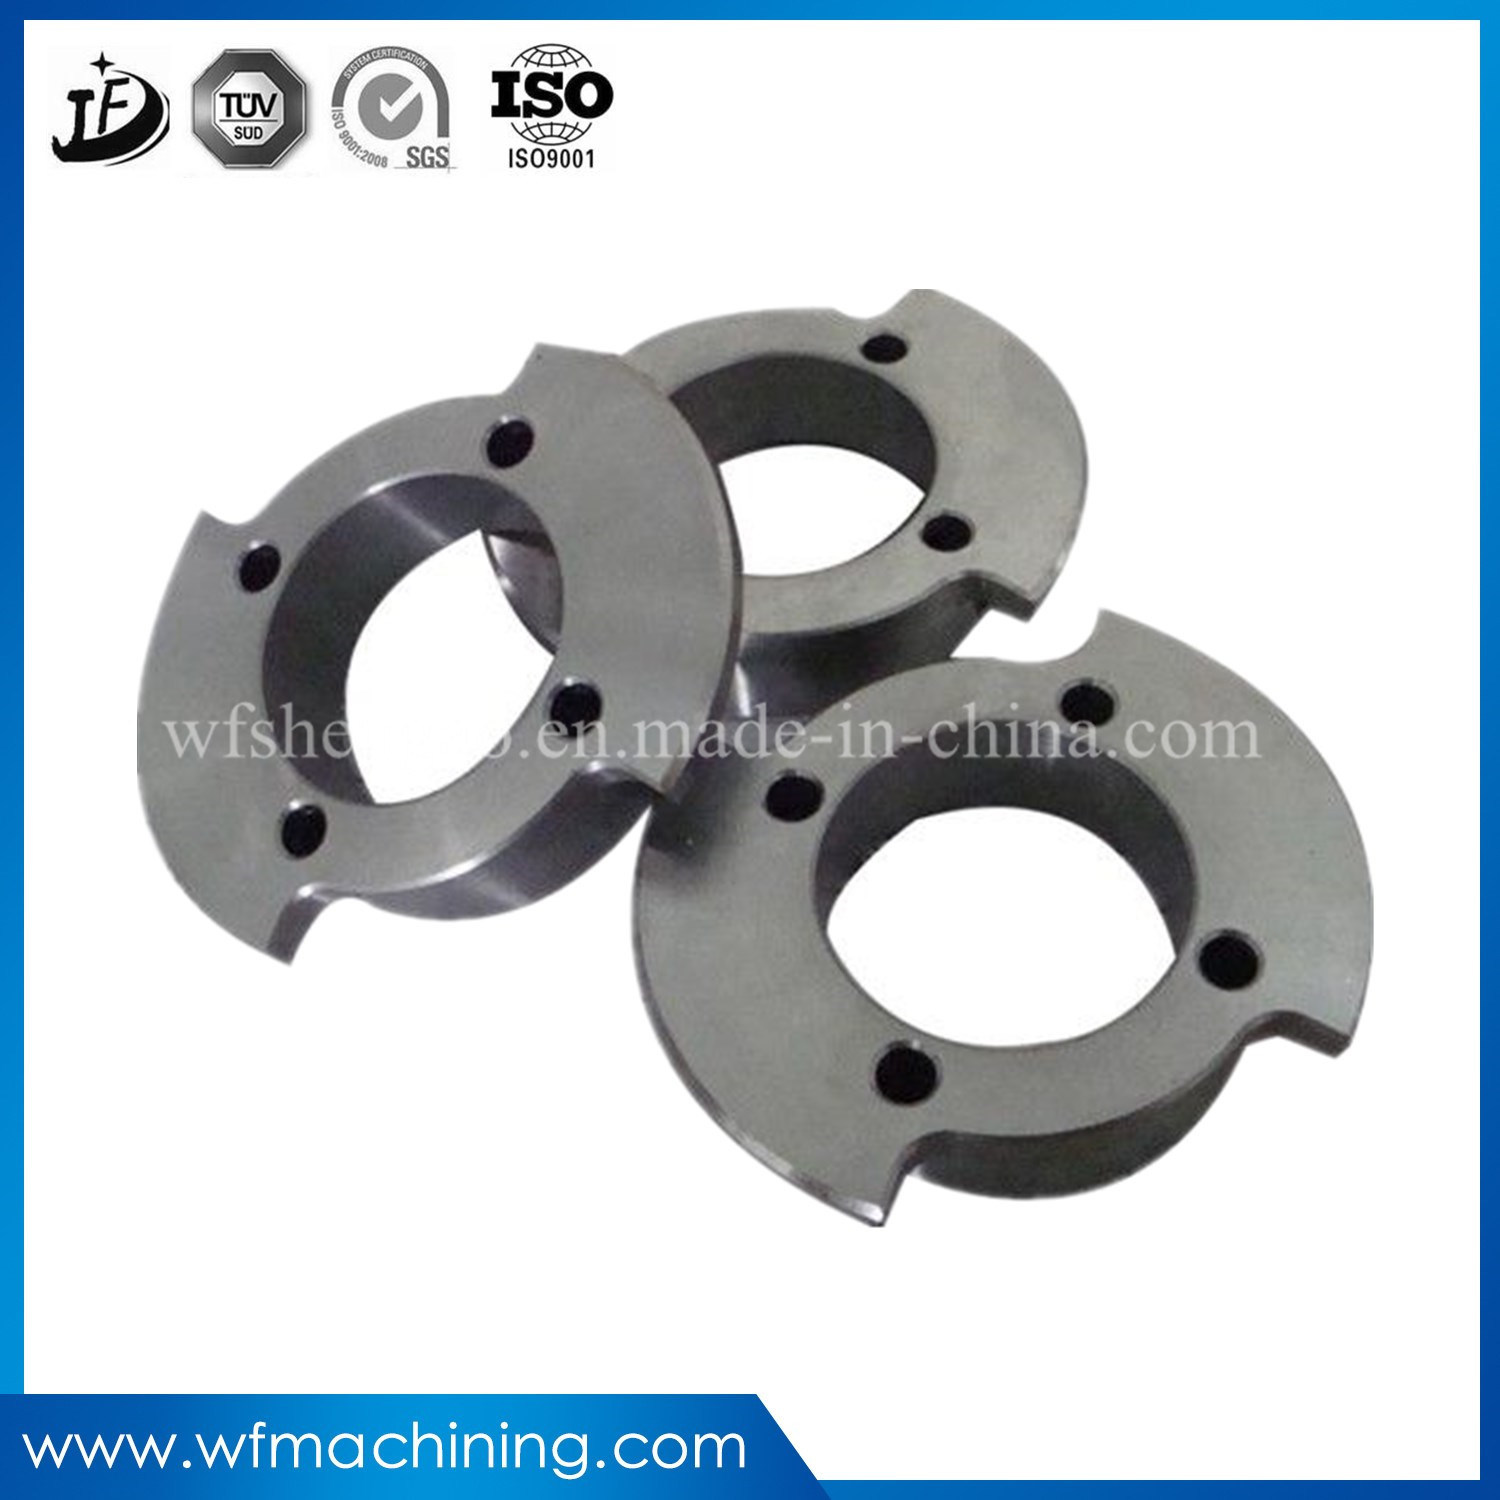 OEM Aluminum/Stainless Steel Sewing Machine/Machined/Machinery CNC Lathe Milling Machining Part